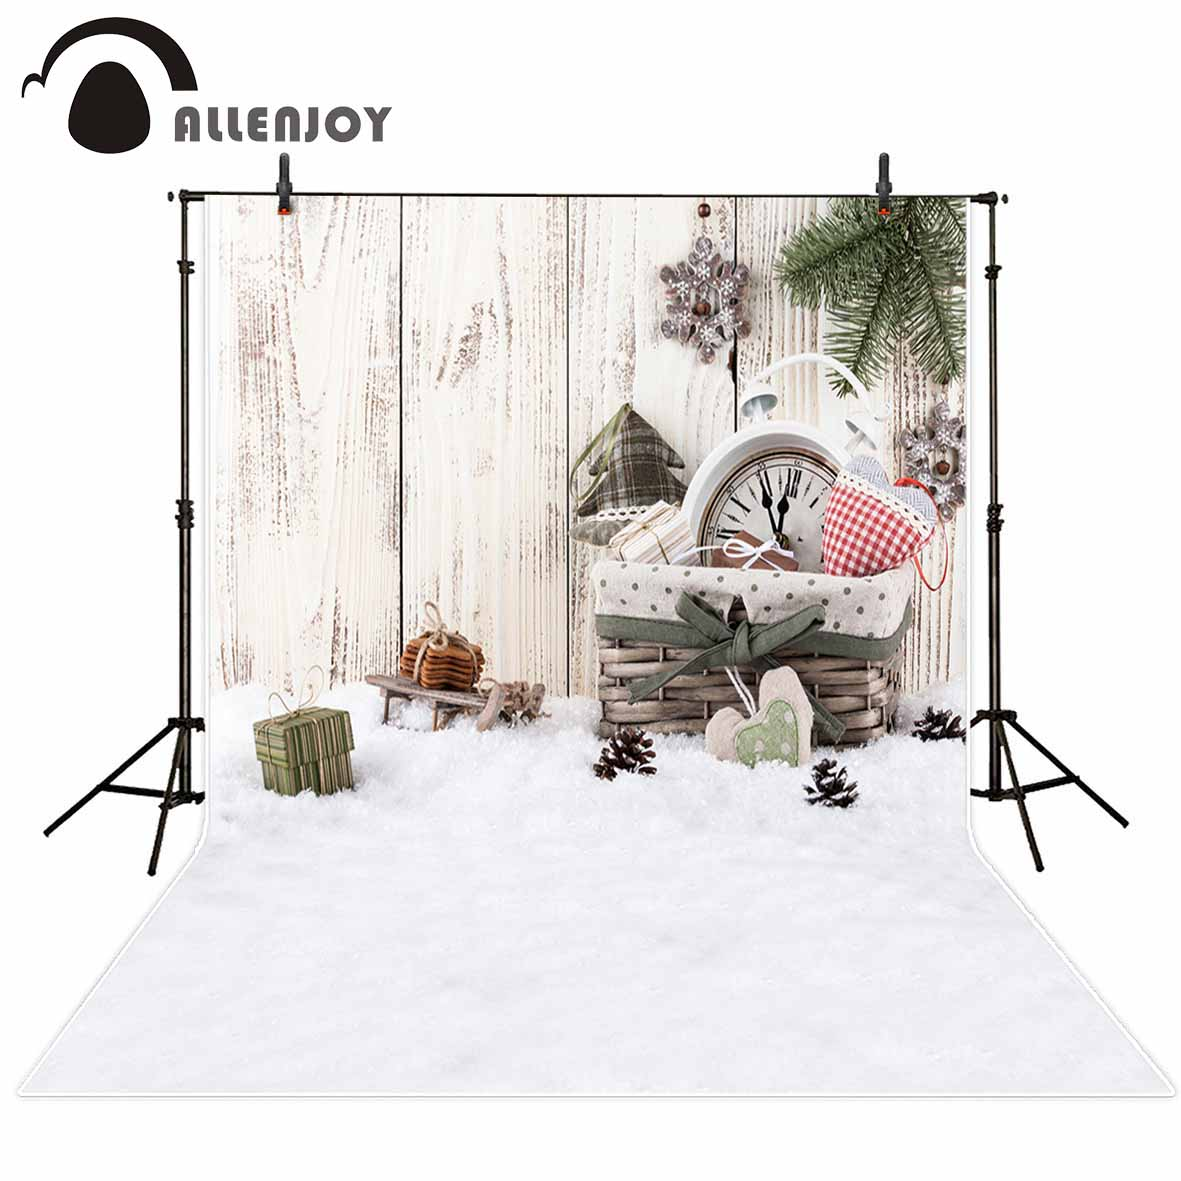 Allenjoy vinyl photo backdrops Snow gift board children happy Christmas background photobooth new arrivals original design